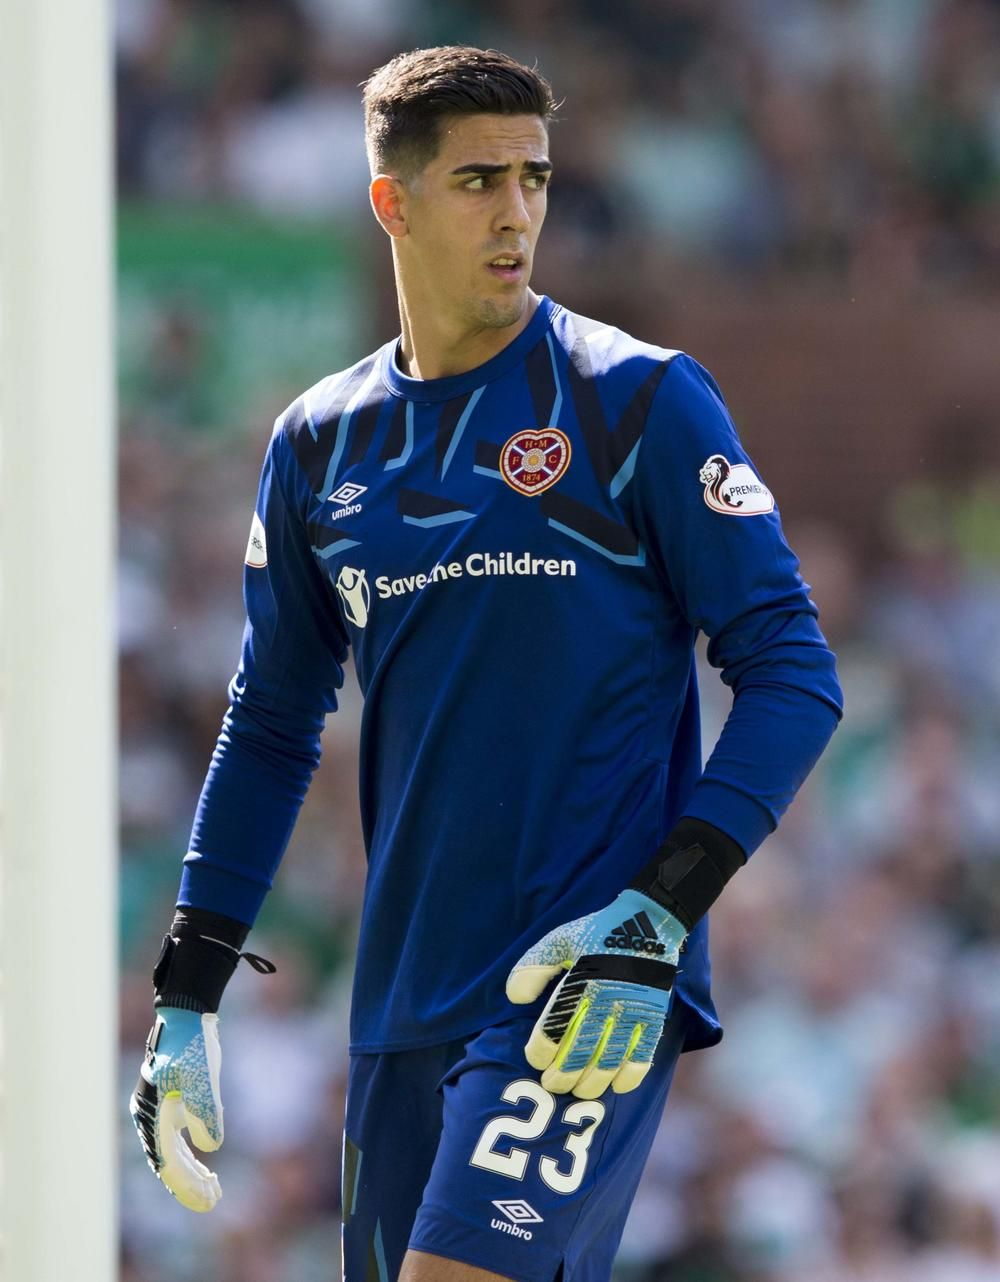 Hearts Goalkeeper Joel Pereira Likely To Be Taken Out Of